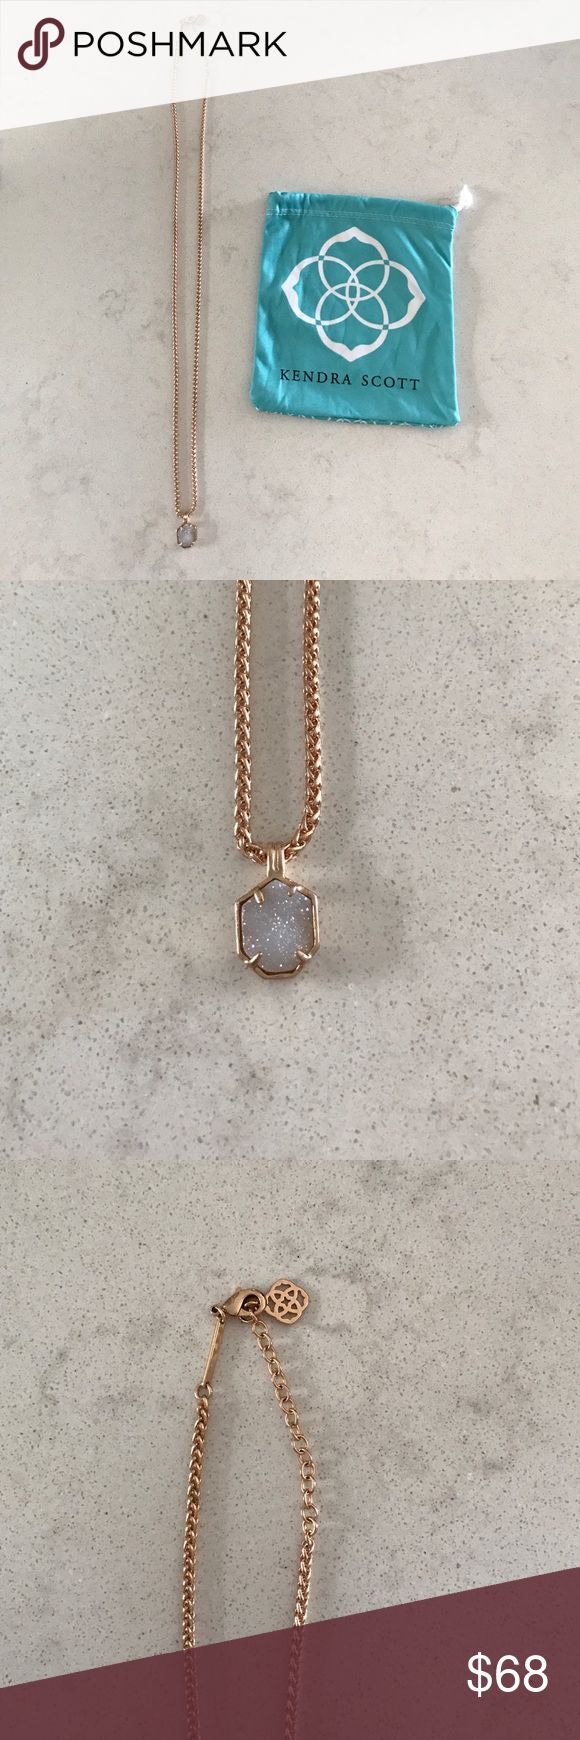 Kendra Scott Rose Gold and Druzy Oliver Necklace Kendra Scott Rose Gold and Druzy Oliver Necklace - Never worn. Brand new without tags. Comes with Kendra Scott Dustbag. Kendra Scott Jewelry Necklaces